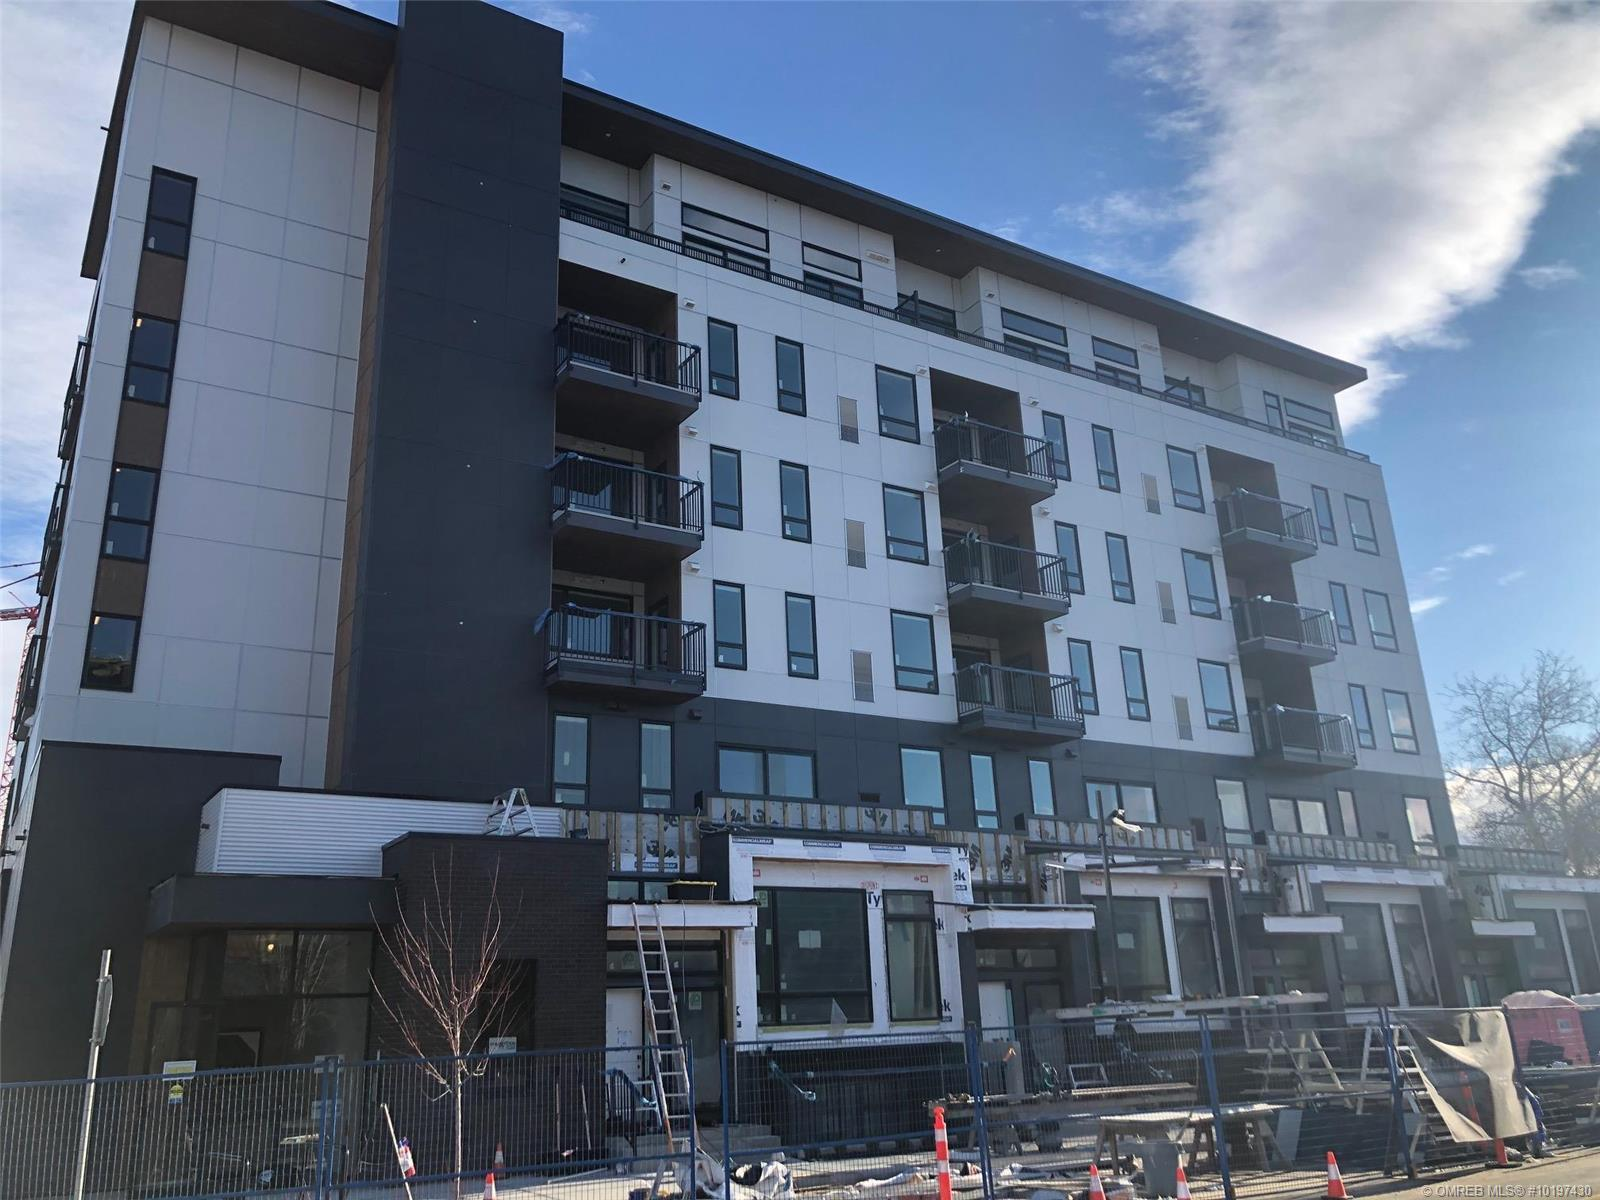 Removed: 1215 St Paul Street West, Kelowna, BC - Removed on 2020-02-13 04:33:04